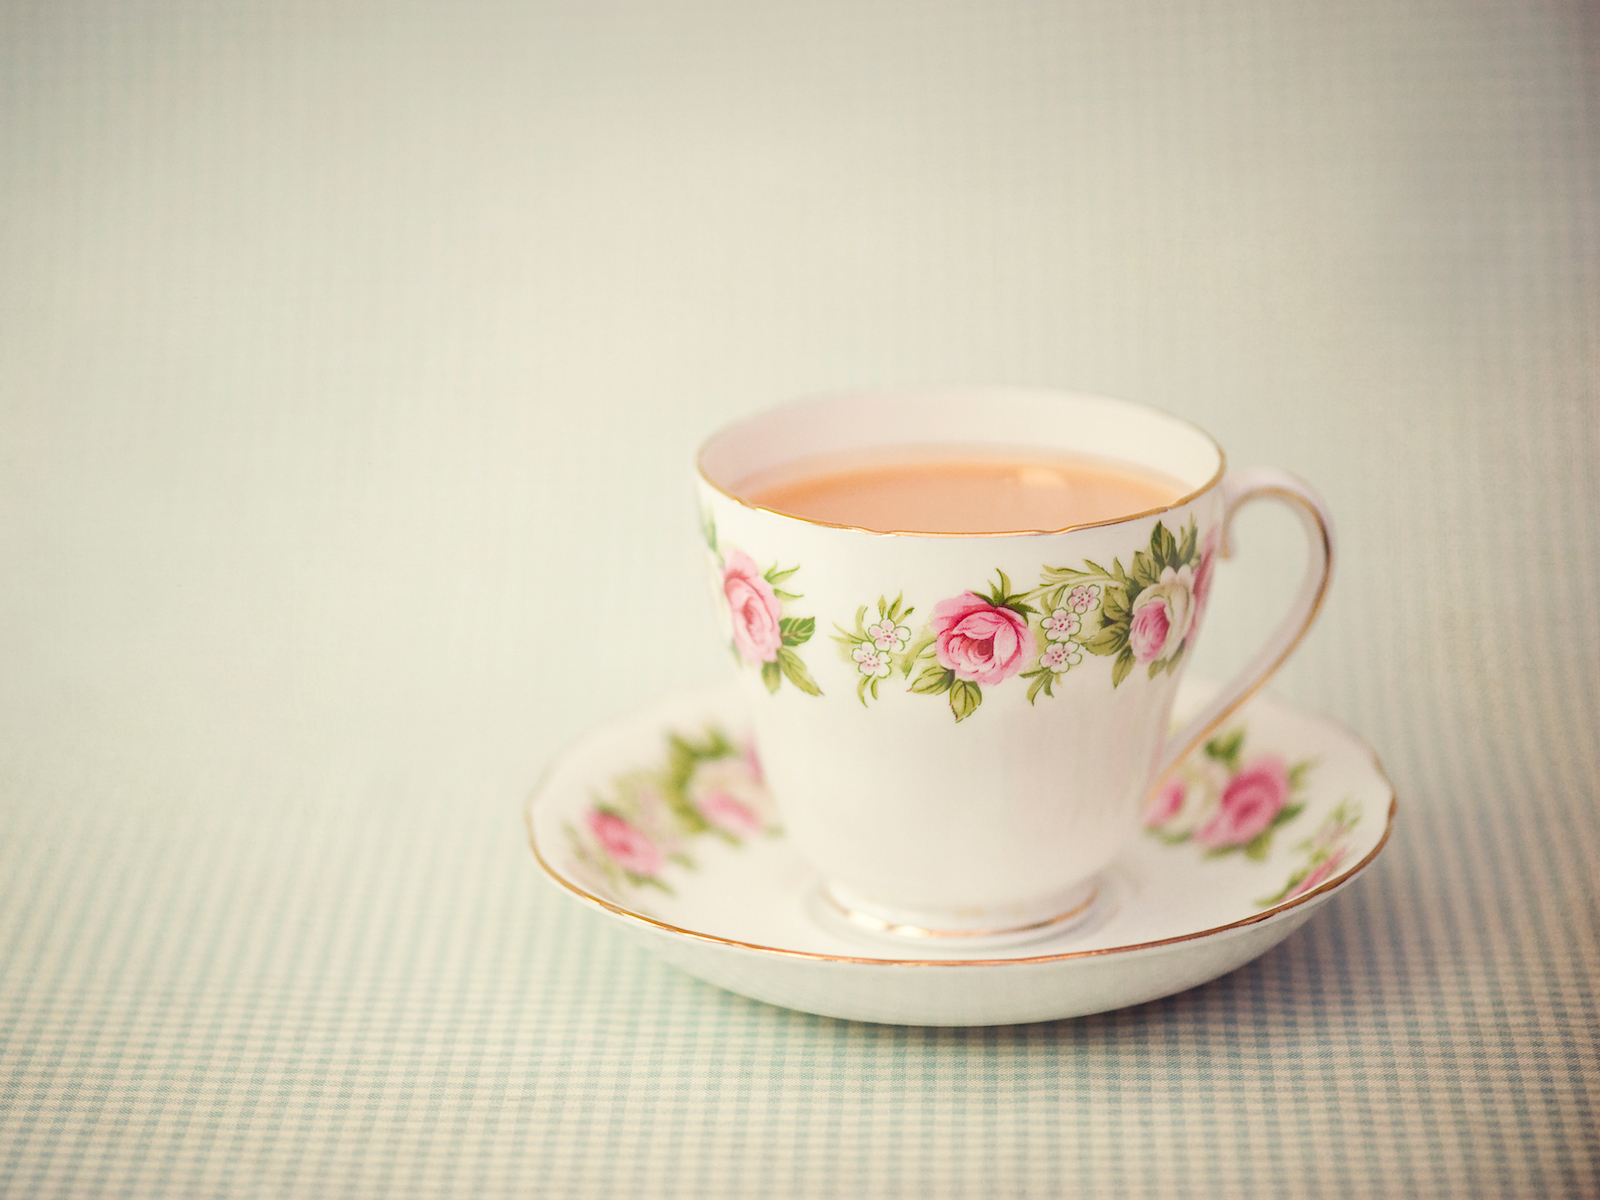 Study Suggests People Who Drink Tea Are More Creative